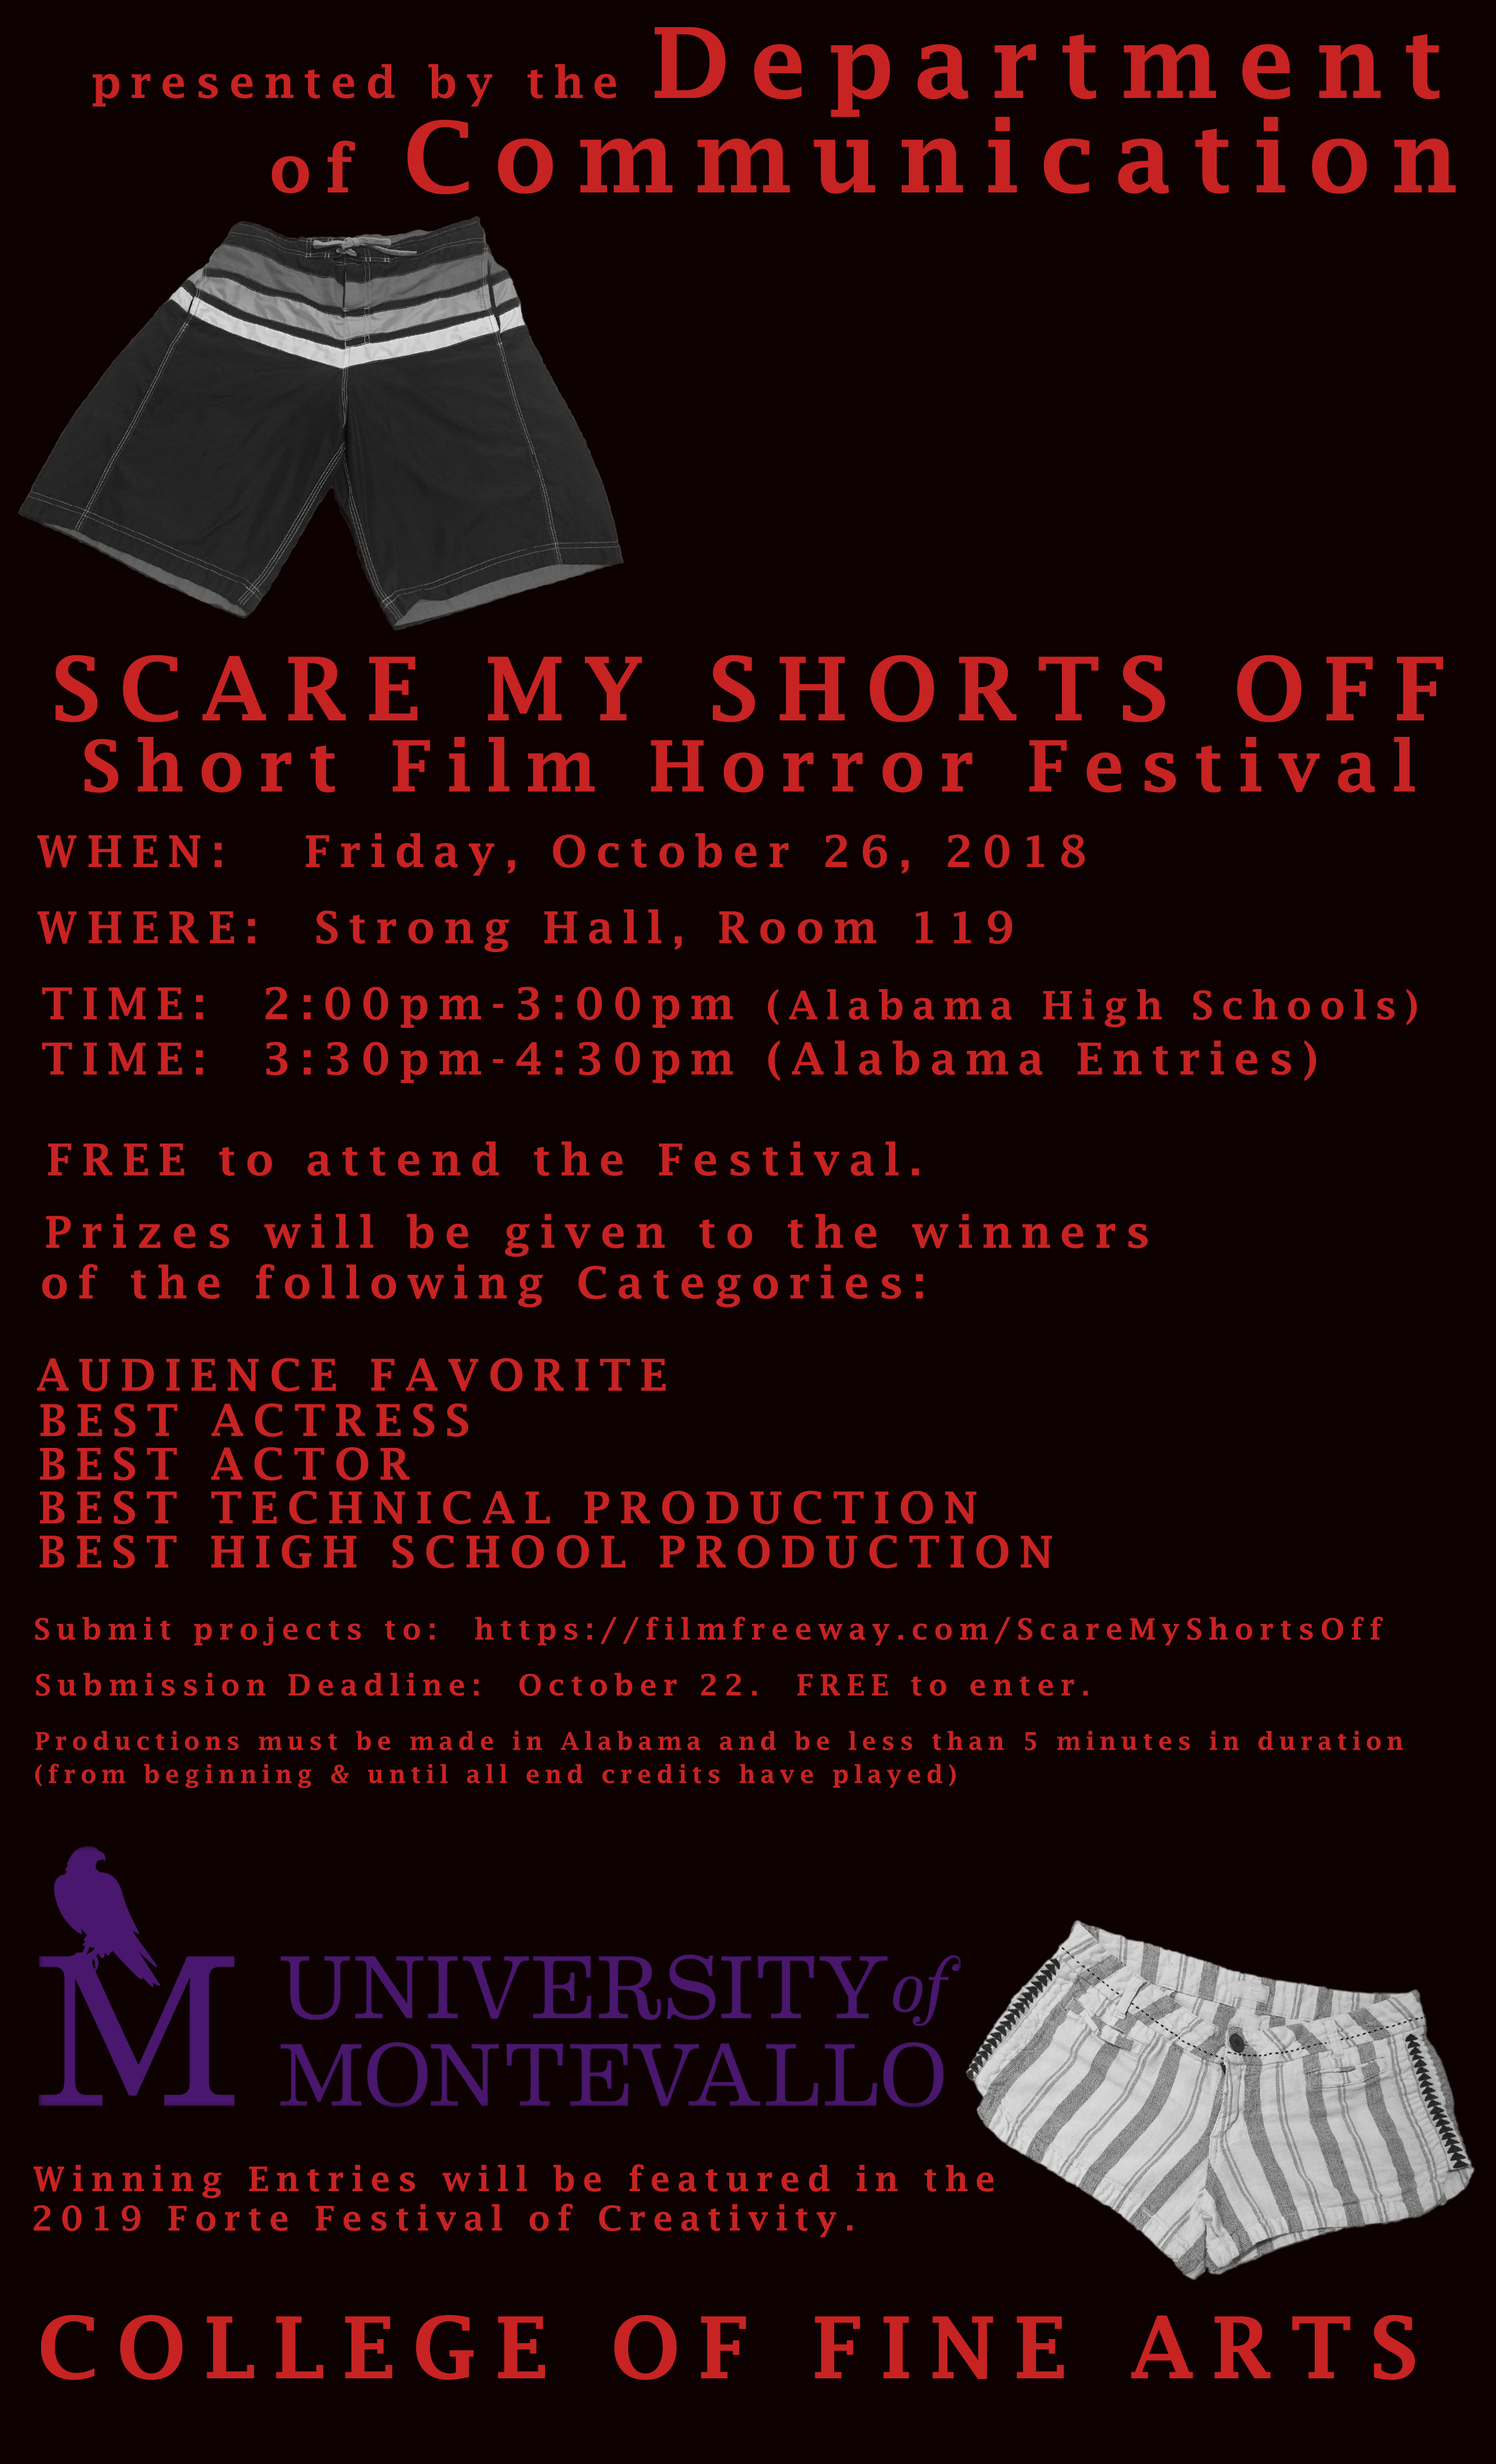 Scare My Shorts Off Flyer 2018